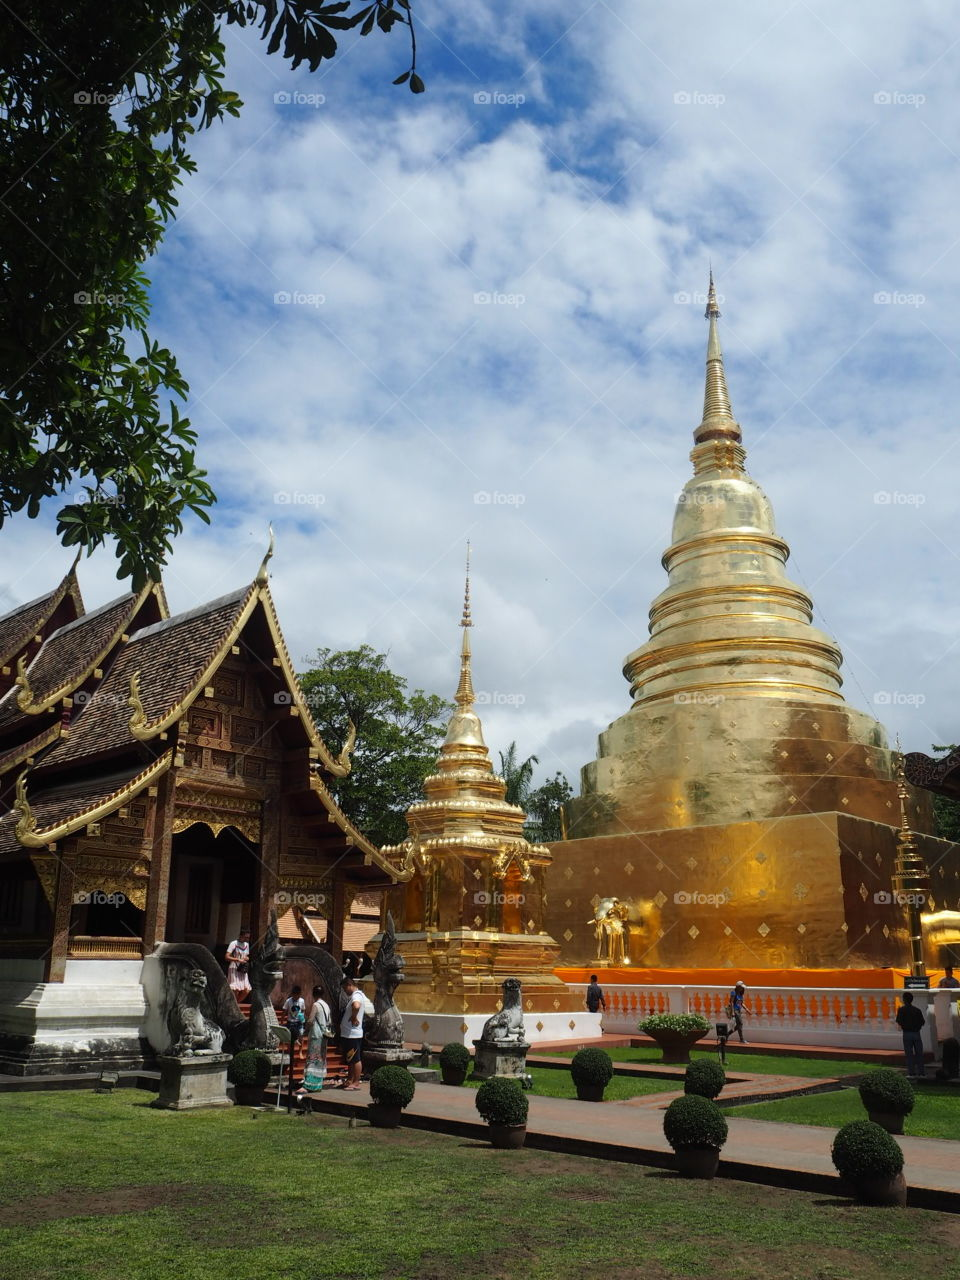 We're call that big building is  pagoda or stupa .In thailand language we're call that thing is chedi .                                                                                           P.S. ( If i use a word or gramma and sentences wrong  you can tell me or teach me  how to use it for right .  thank you . )                                                              Sawasdeekrab